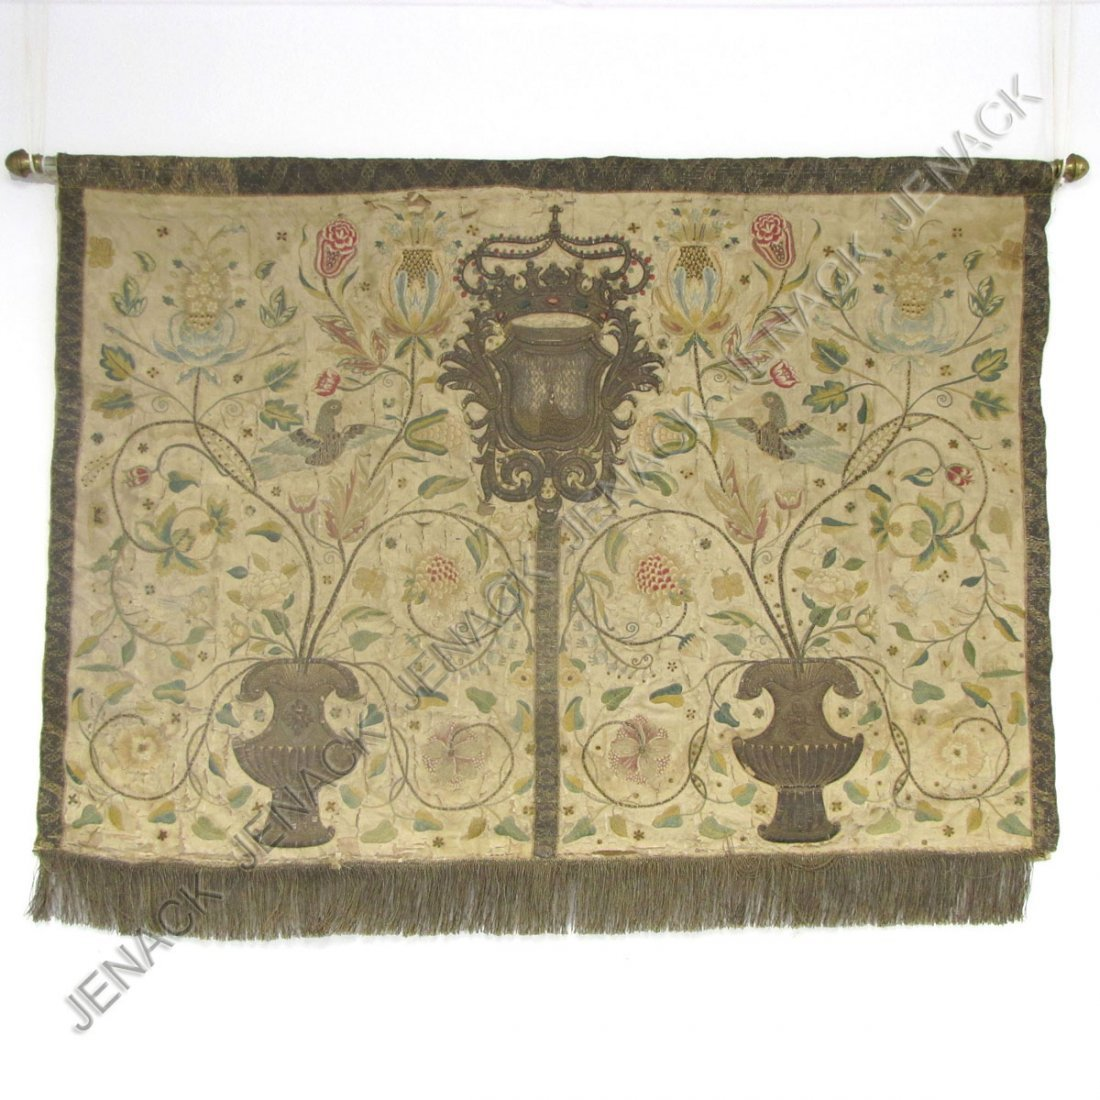 176: EMBROIDERED PANEL, EPISCOPAL ALTAR FRONT